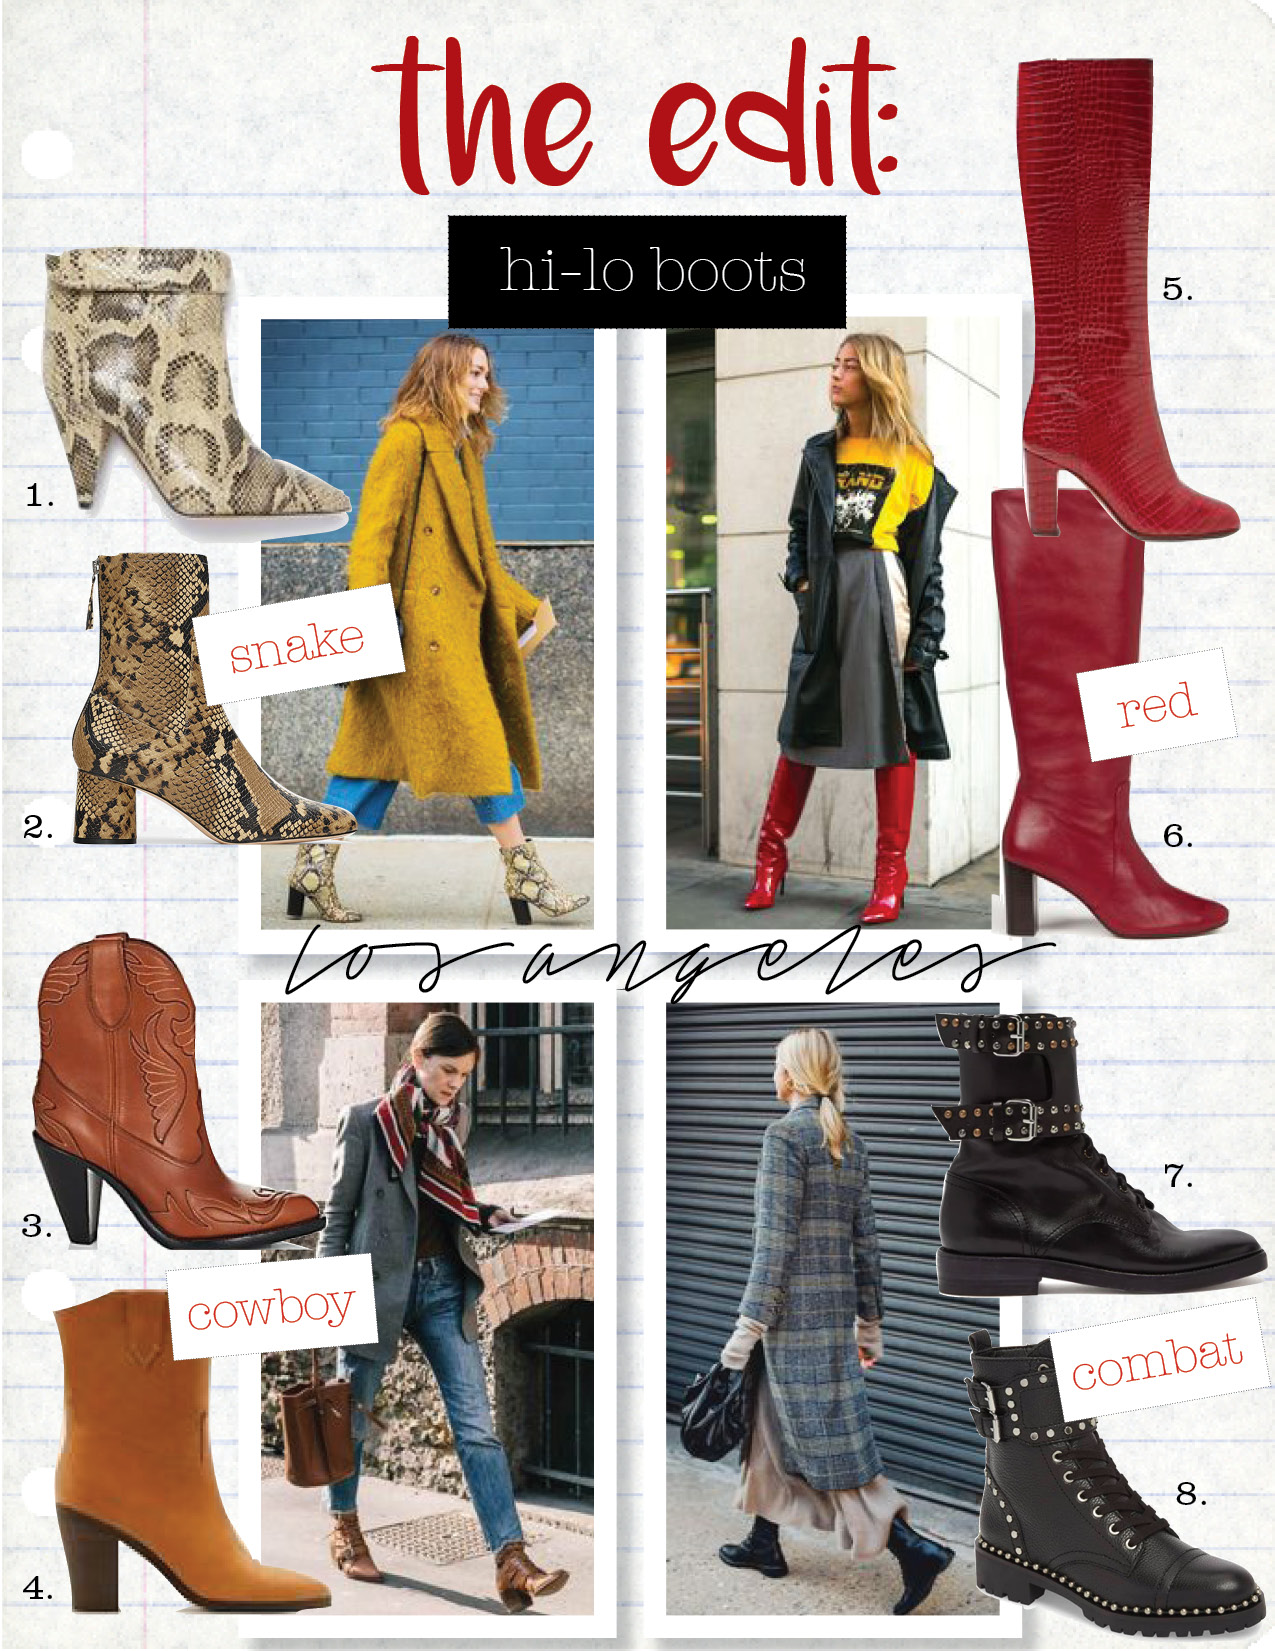 1. isabel Marant lisbo boots, $1025,  isabelmarant.com  2. zara heeled animal print ankle boots, $89,  zara.com  3. givenchy stitched leather western boots, $976,  saksfifthavenue.com  4. mango cowboy leather boots, $169,  mango.com  5. aquazzura brera 85 croc-effect leather knee-high boots, $840,  matchesfashion.com  6. ba&sh carrie boots, $550,  ba-sh.com  7. isabel marant teylon leather ankle boots, $840,  matchesfashion.com  8. sam edelman jennifer studded combat boot, $127,  nordstrom.com